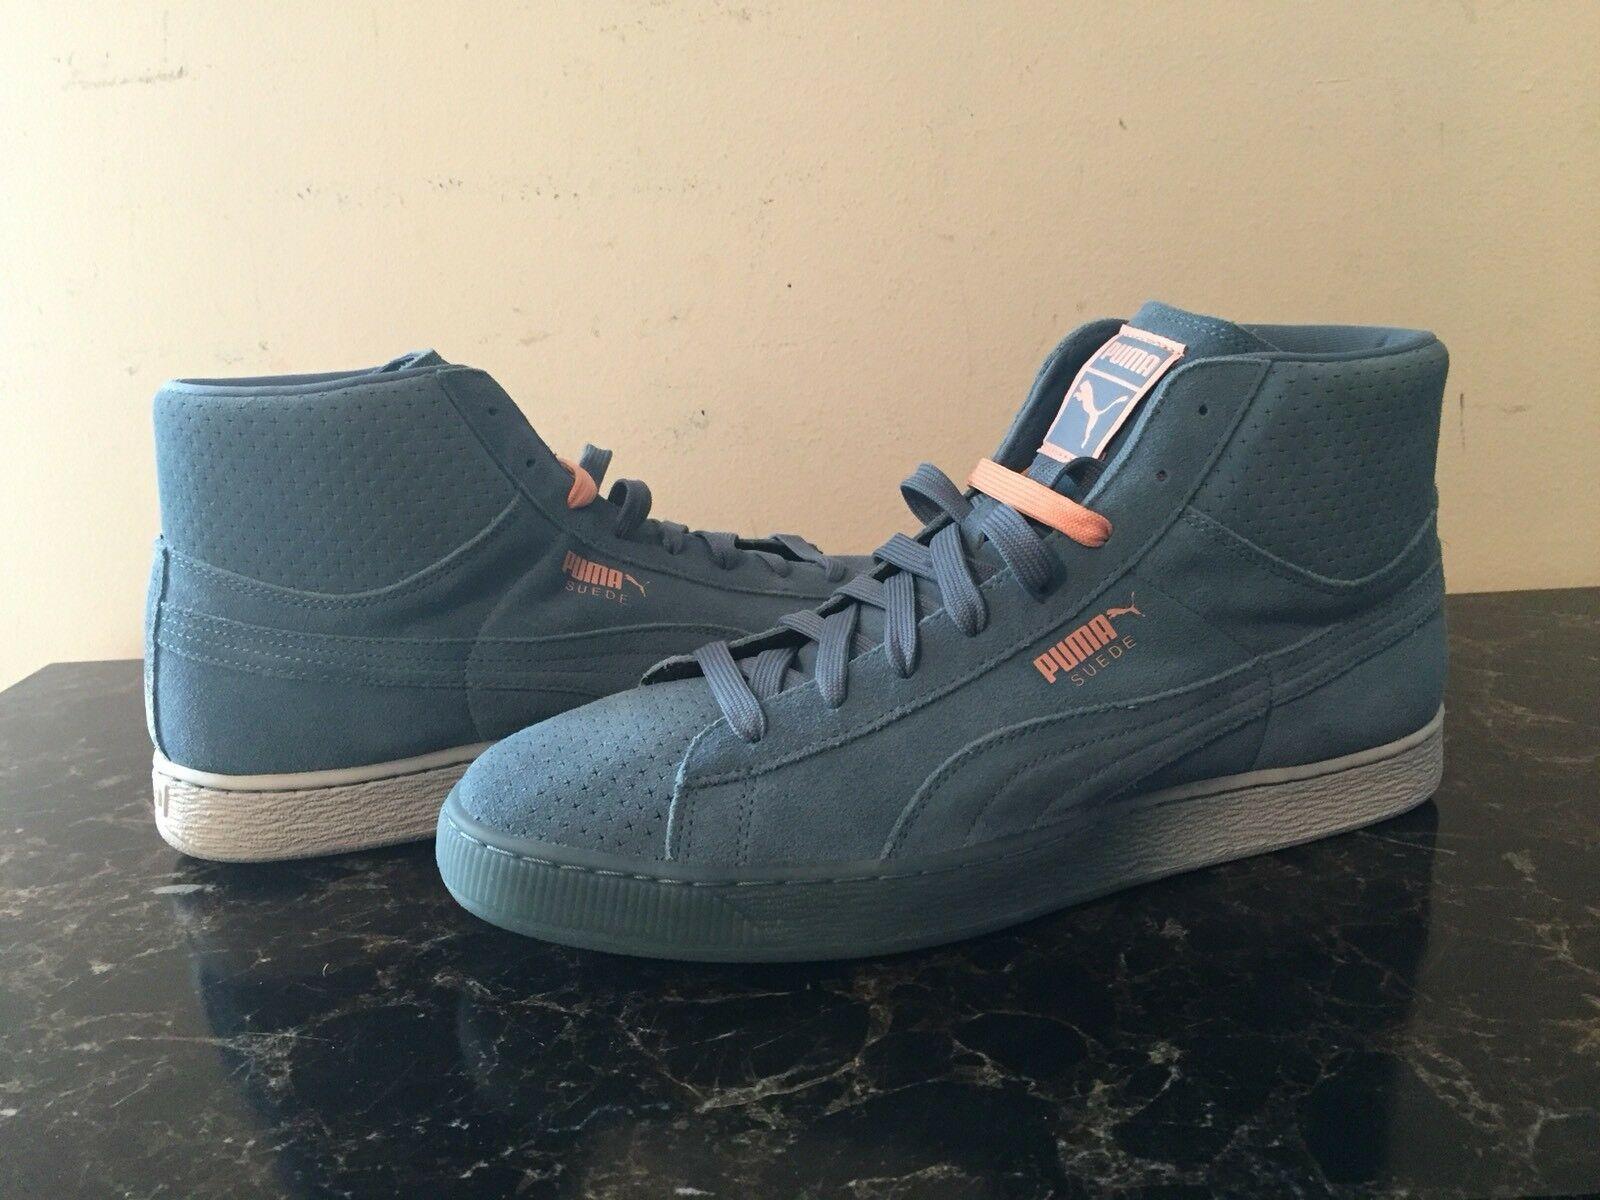 Pink Dolphin X Puma Collab Suede Mid Top Blue Pink Uomo Sz 12